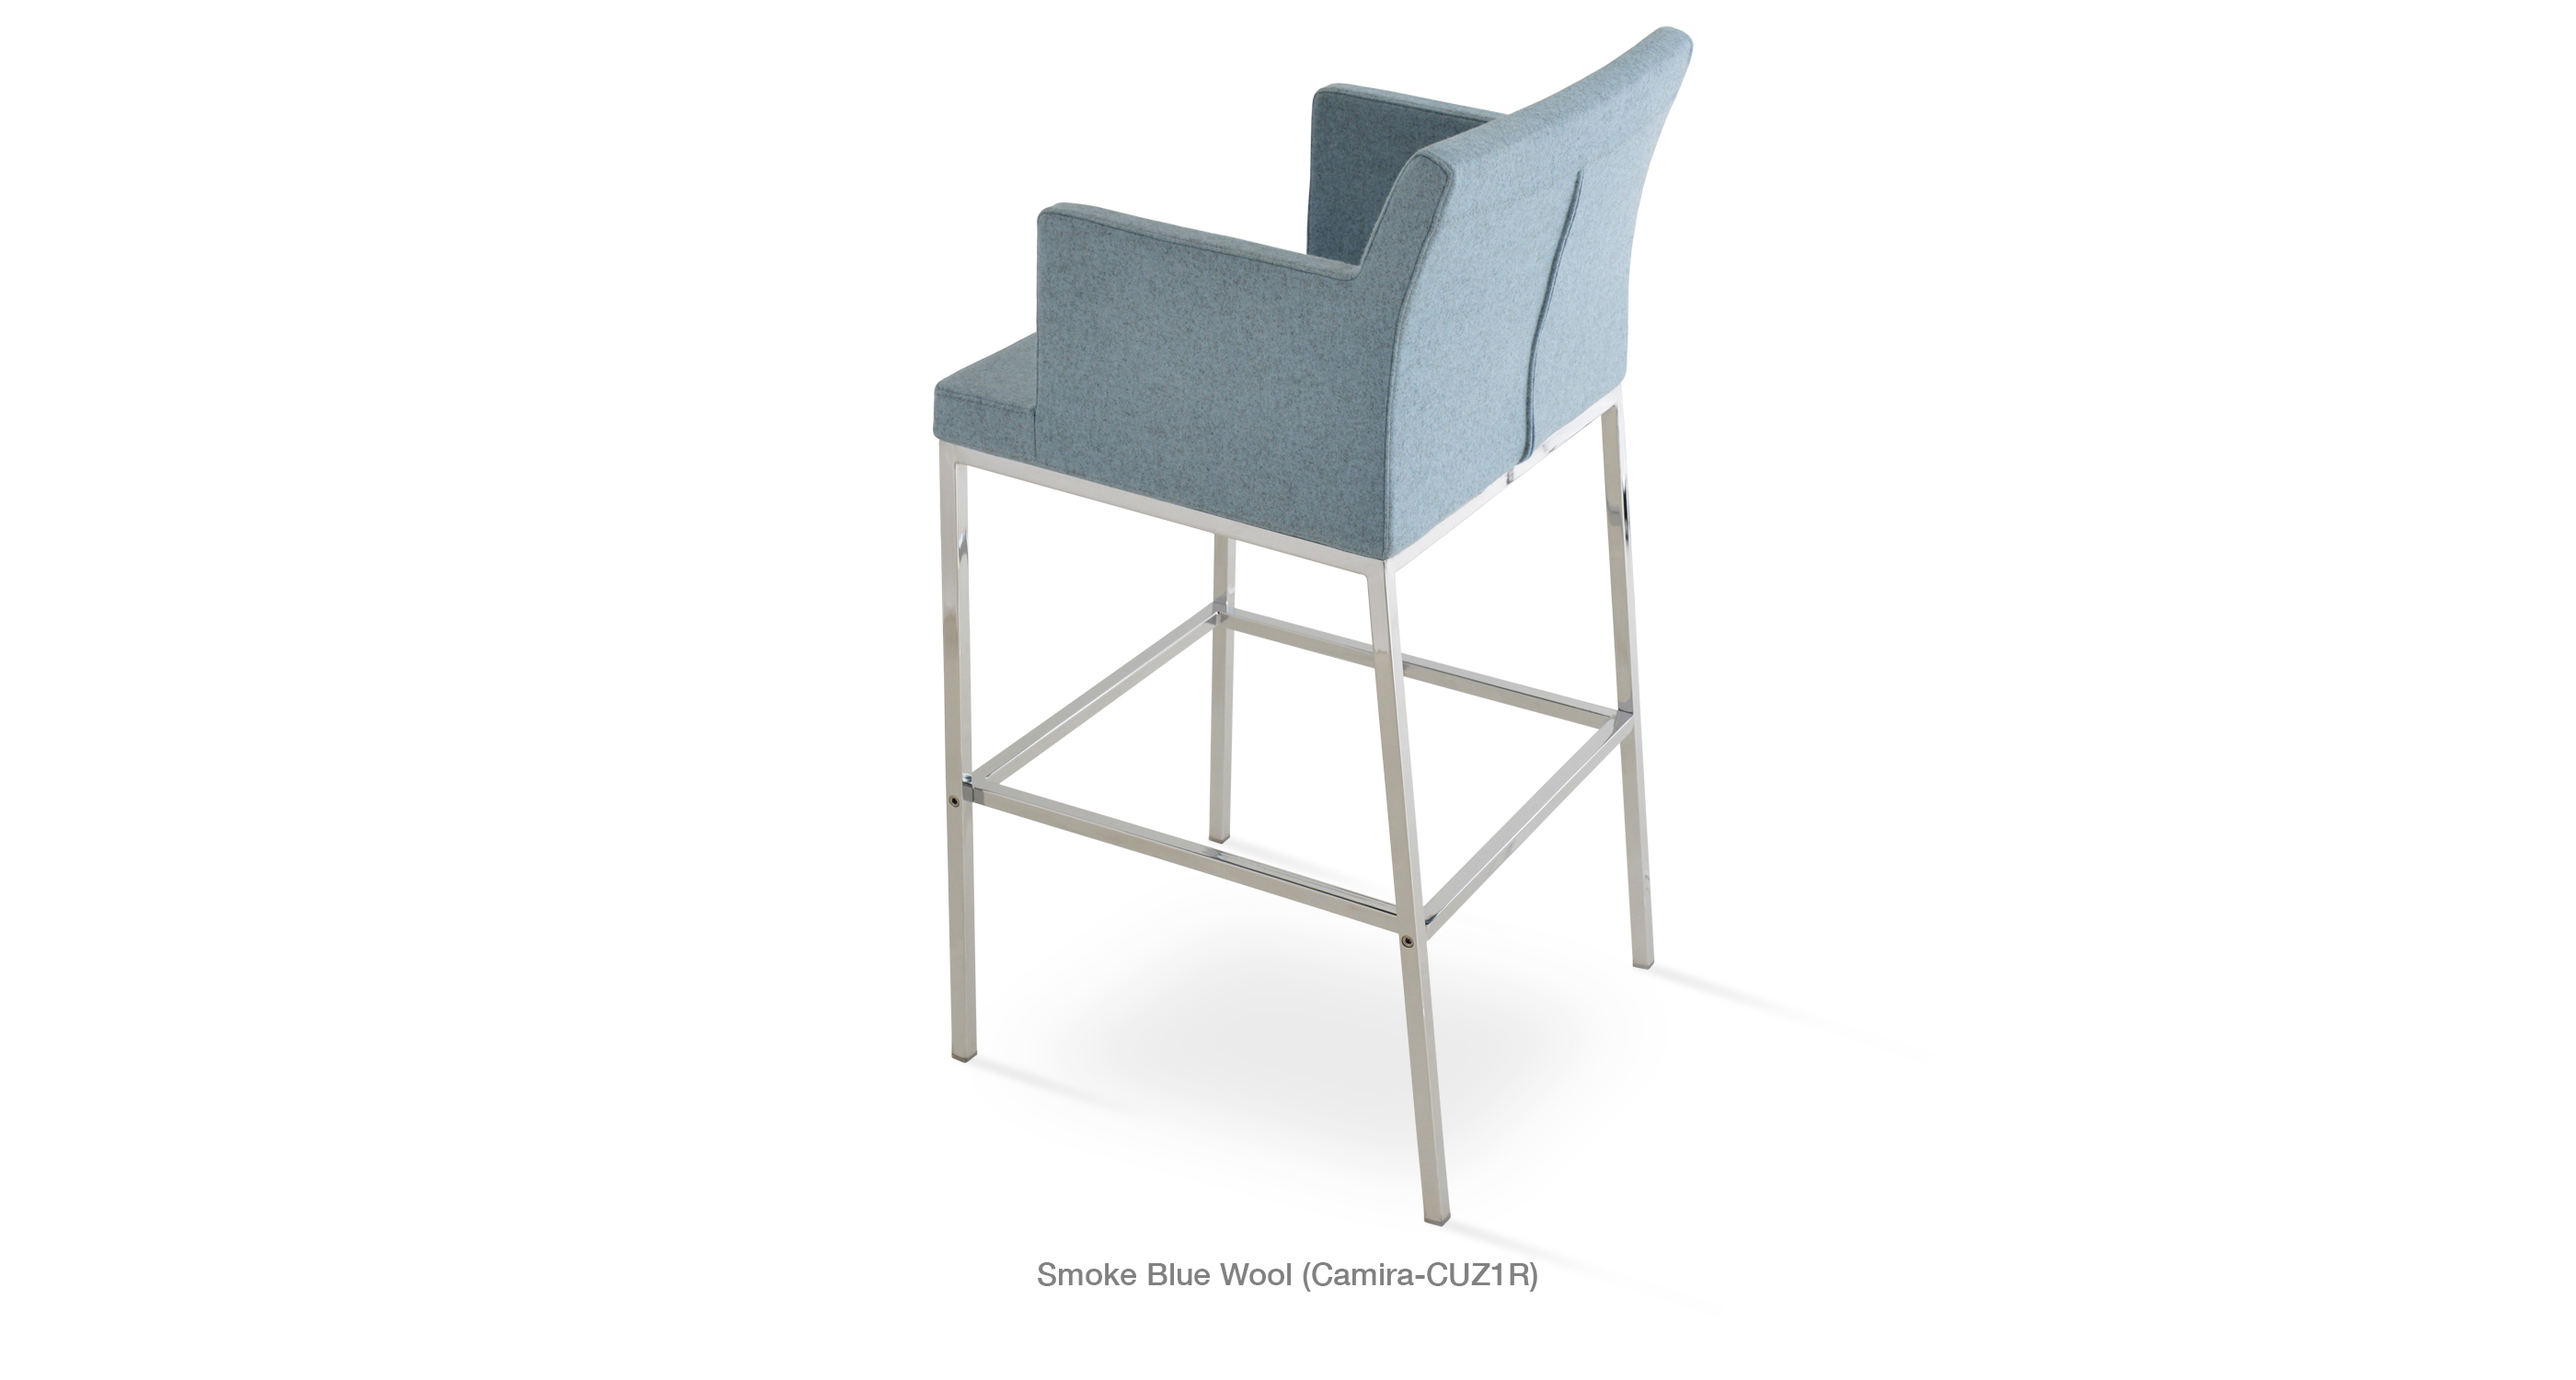 three decoreven gallery wood wondrous chairs brown gray counter height inspiring bar kitchen blue high with stools splendiferous zoom stool of most back in definition navy resolution s leon top